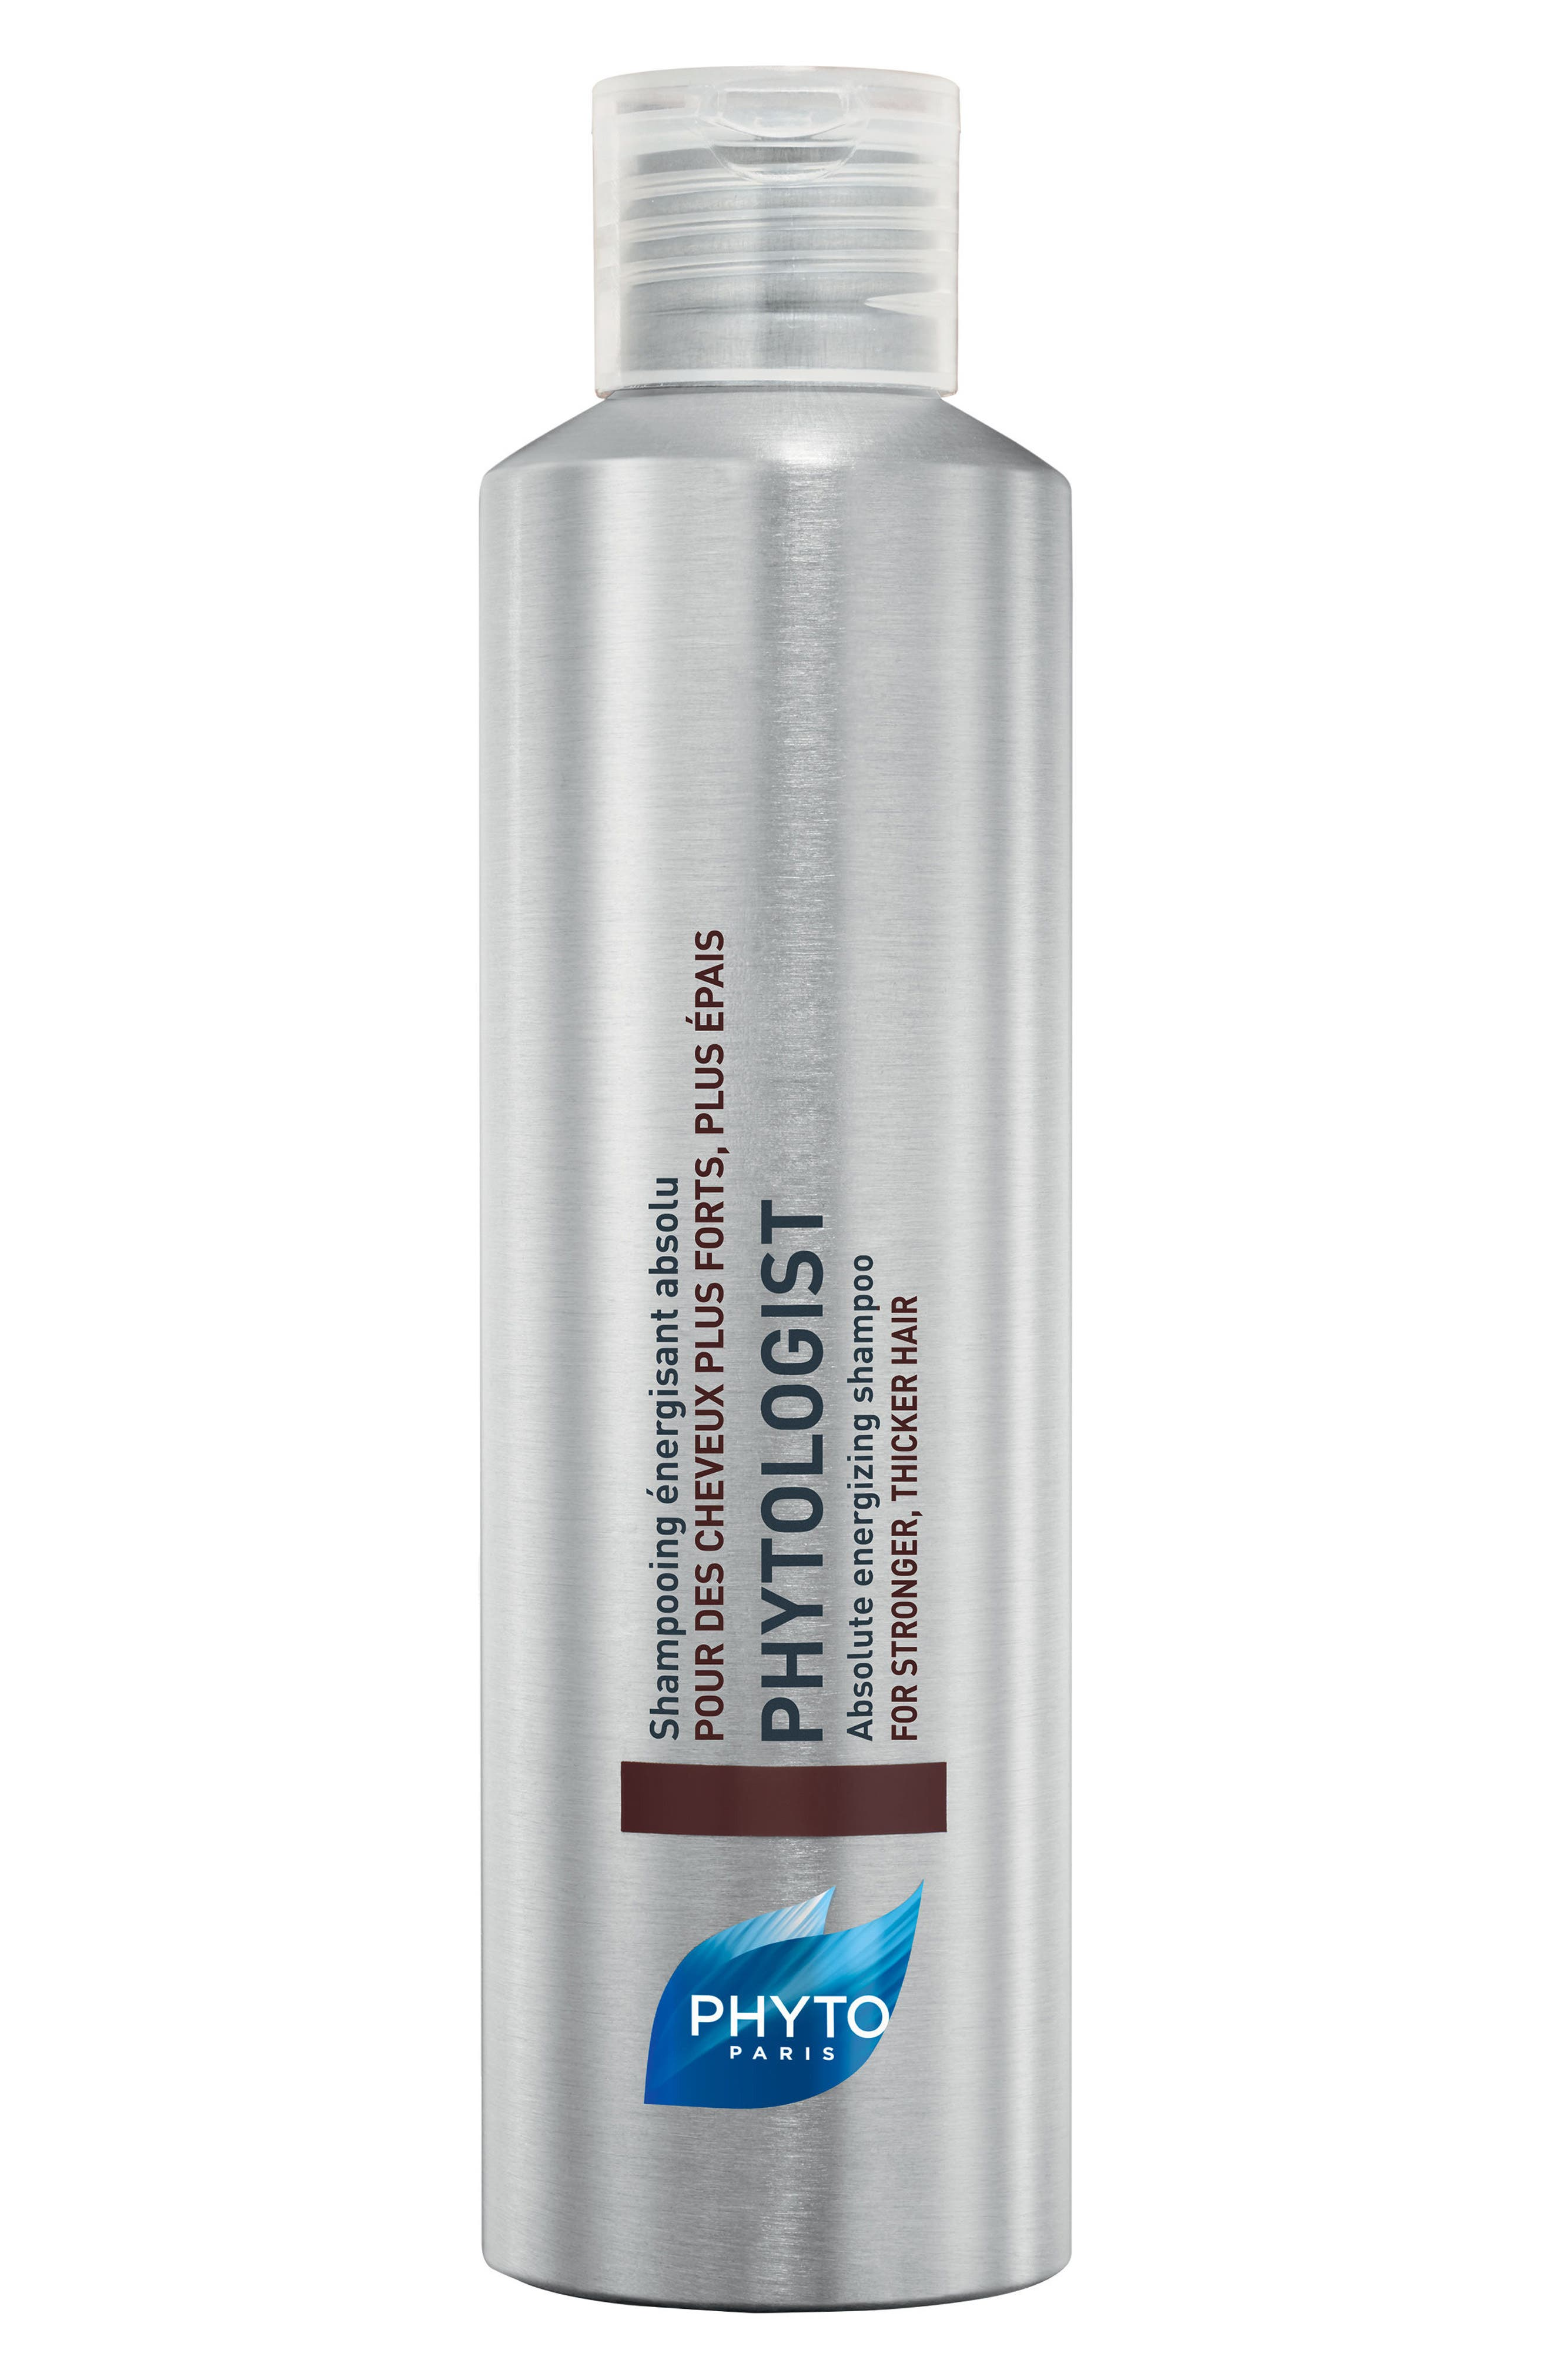 Phytologist Absolute Energizing Shampoo,                             Main thumbnail 1, color,                             No Color